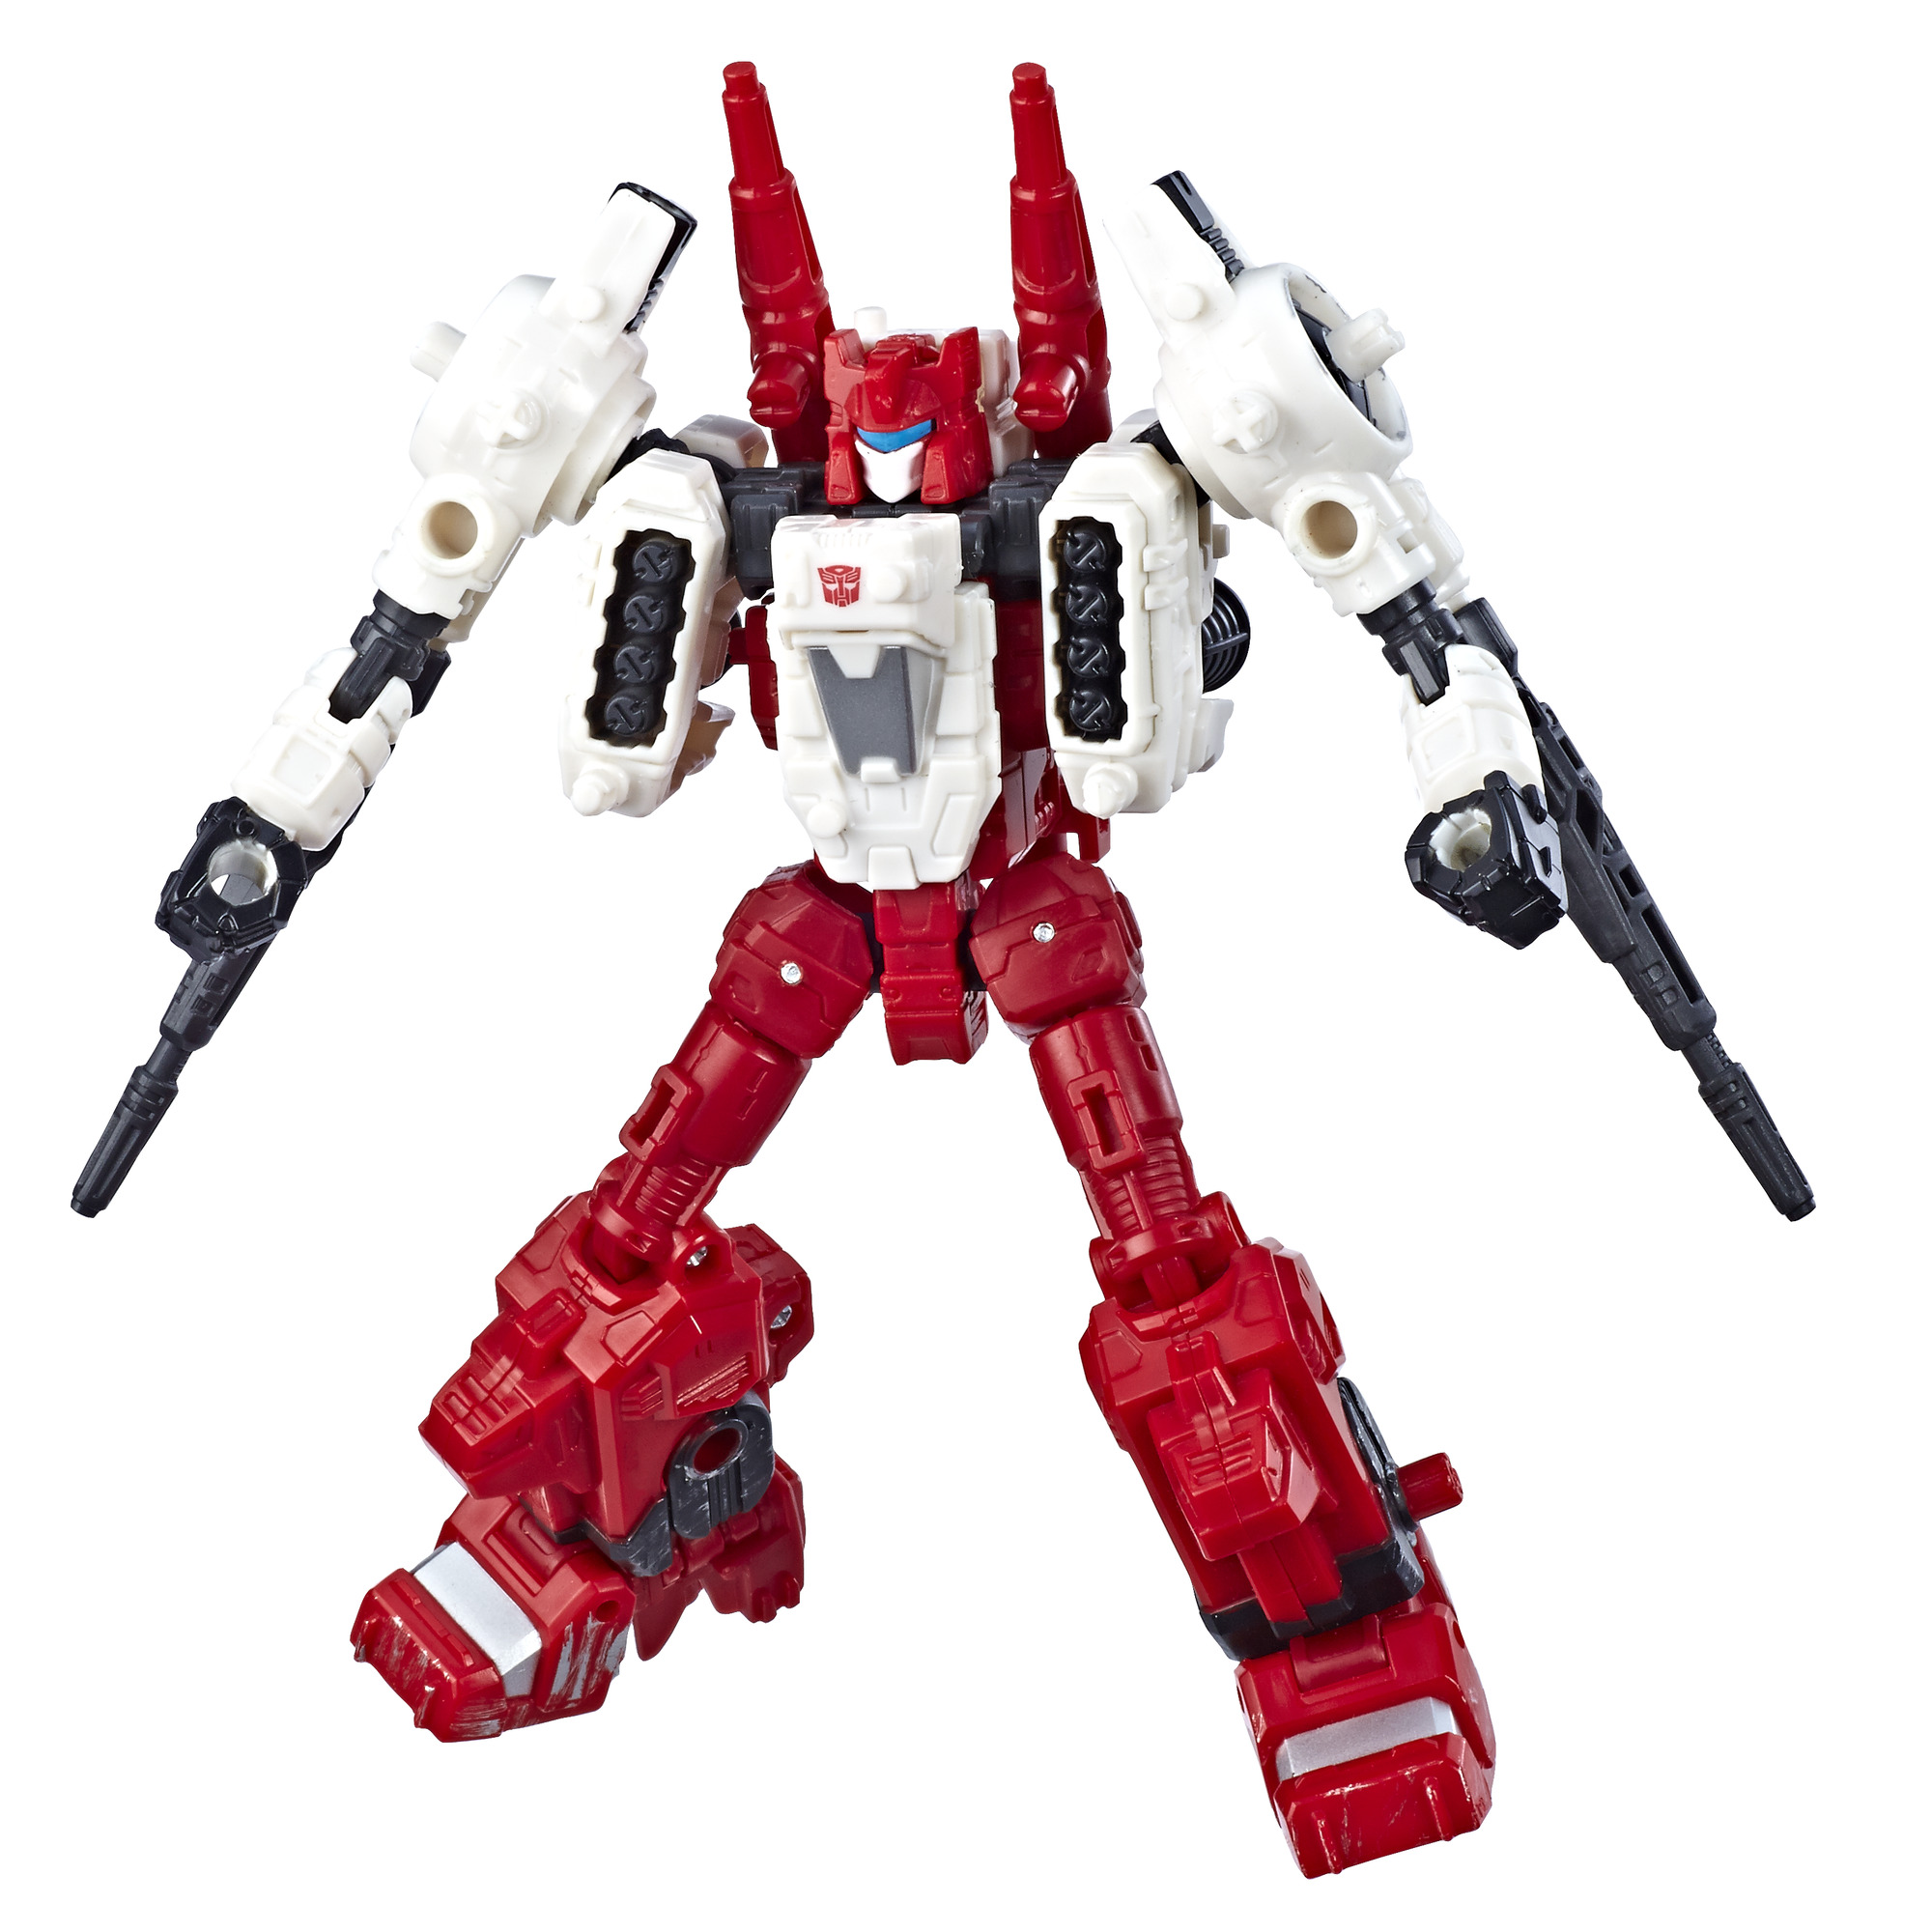 Transformers Toys Generations War for Cybertron Deluxe Wfc-S22 Autobot Six-Gun Weaponizer Action Figure